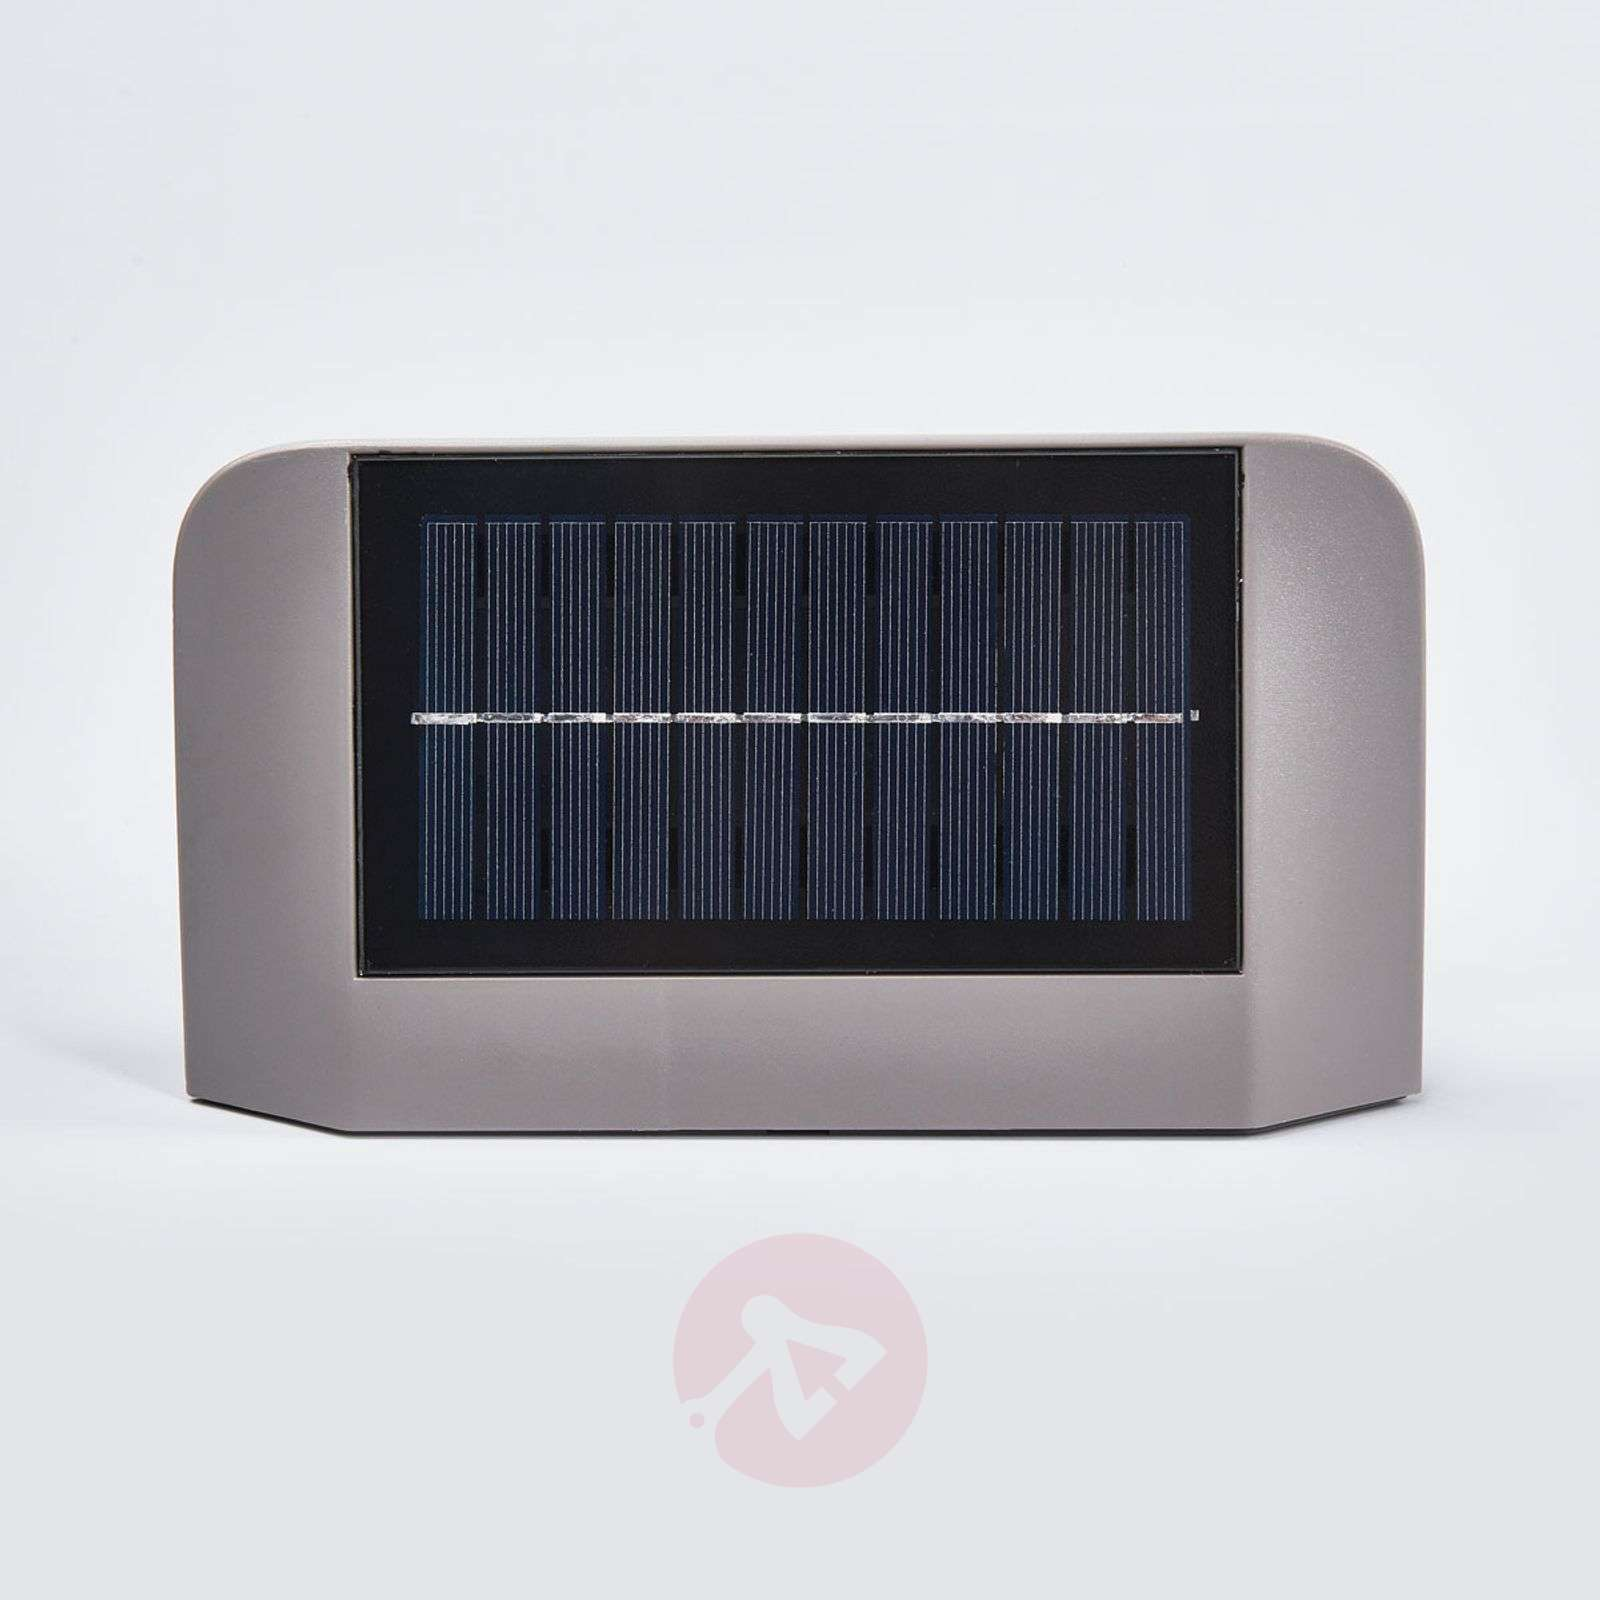 Ghost LED Solar Wall Light - With Motion Detector